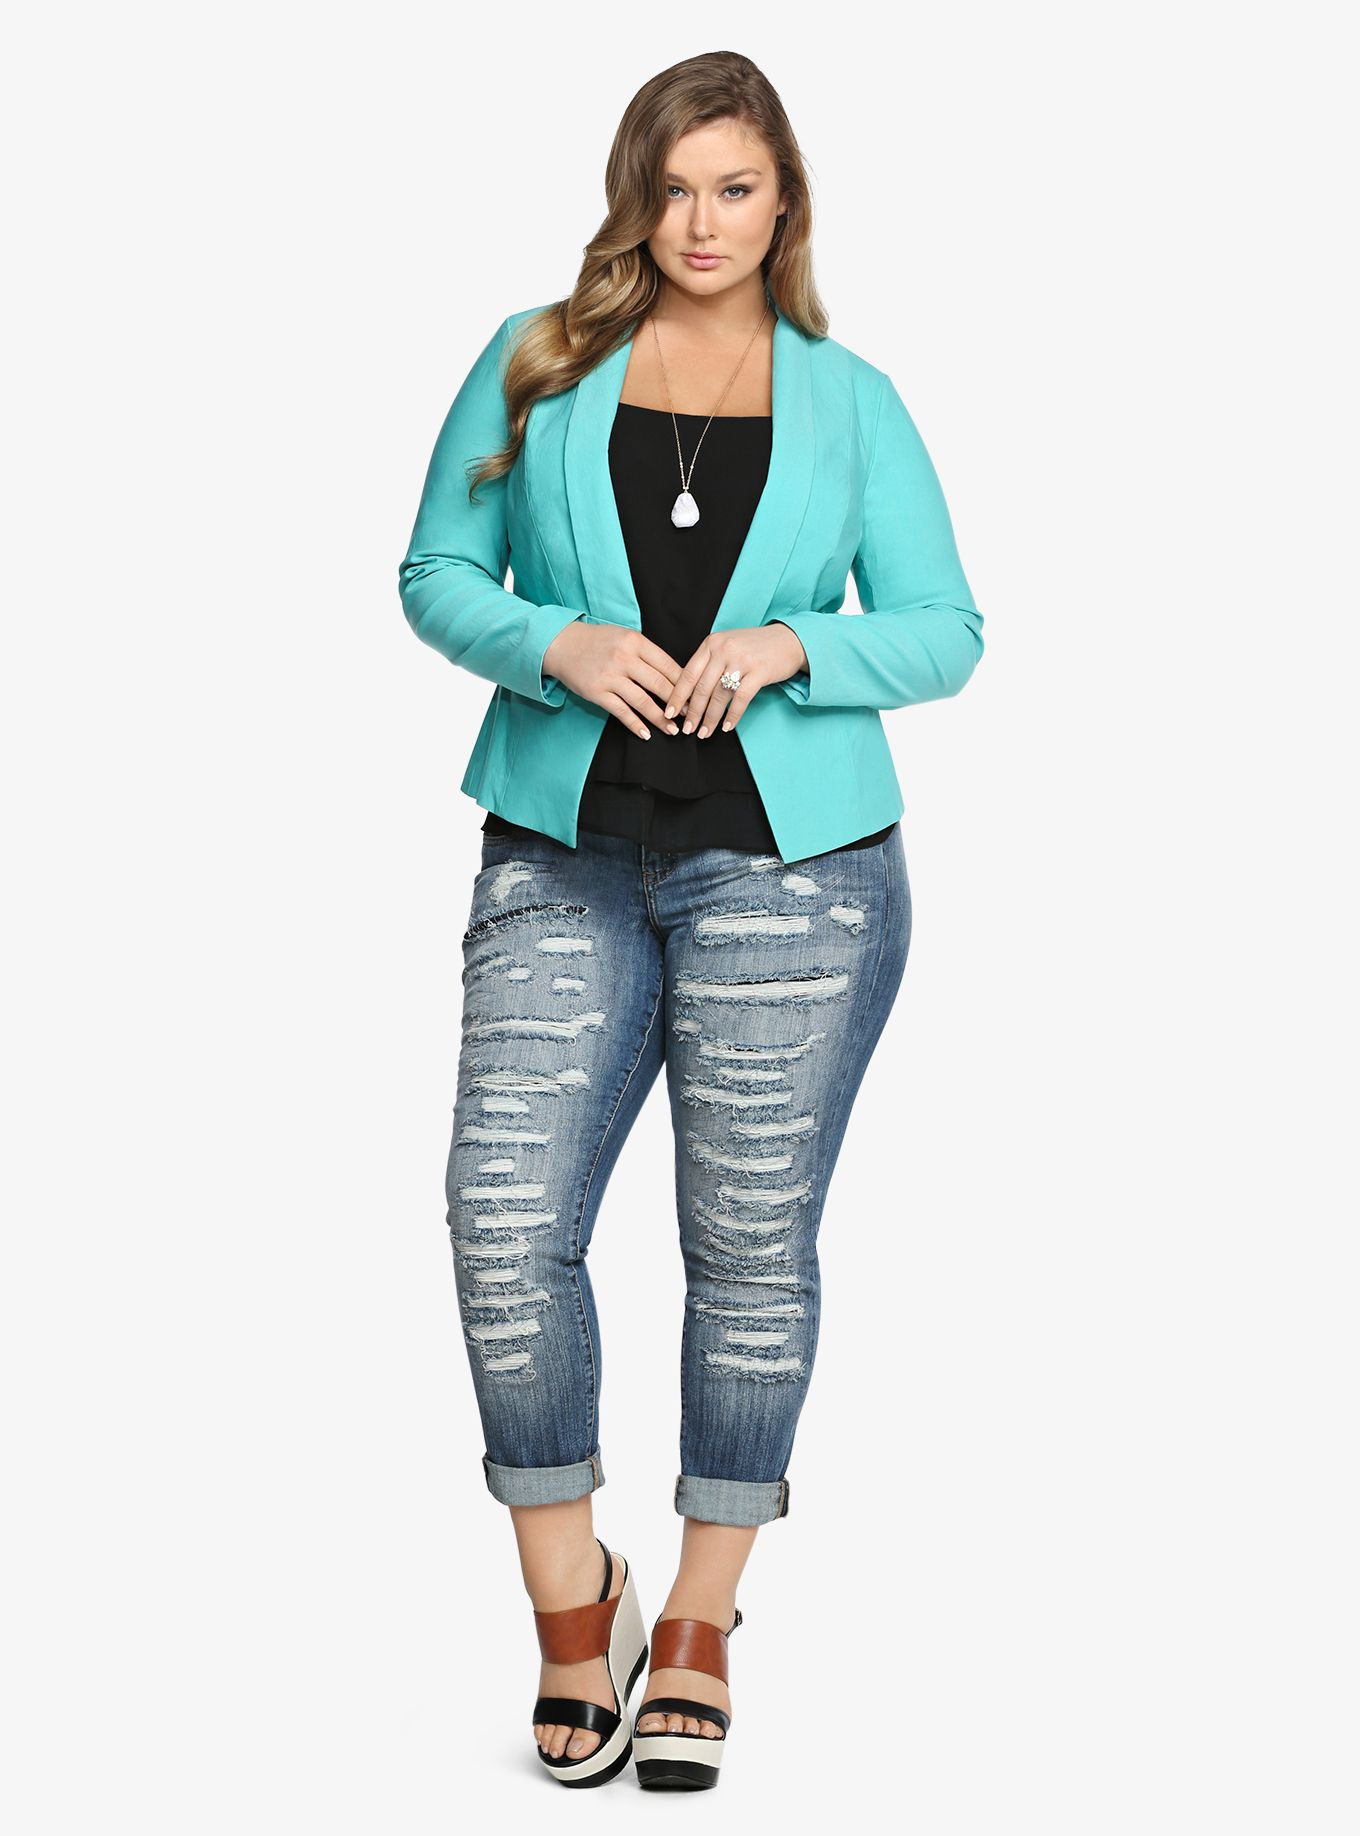 6351e4f70470 Color Pop! Plus Size Blazer #plussizefashion Mode För Kurviga Tjejer,  Jeansoutfits, Outfits